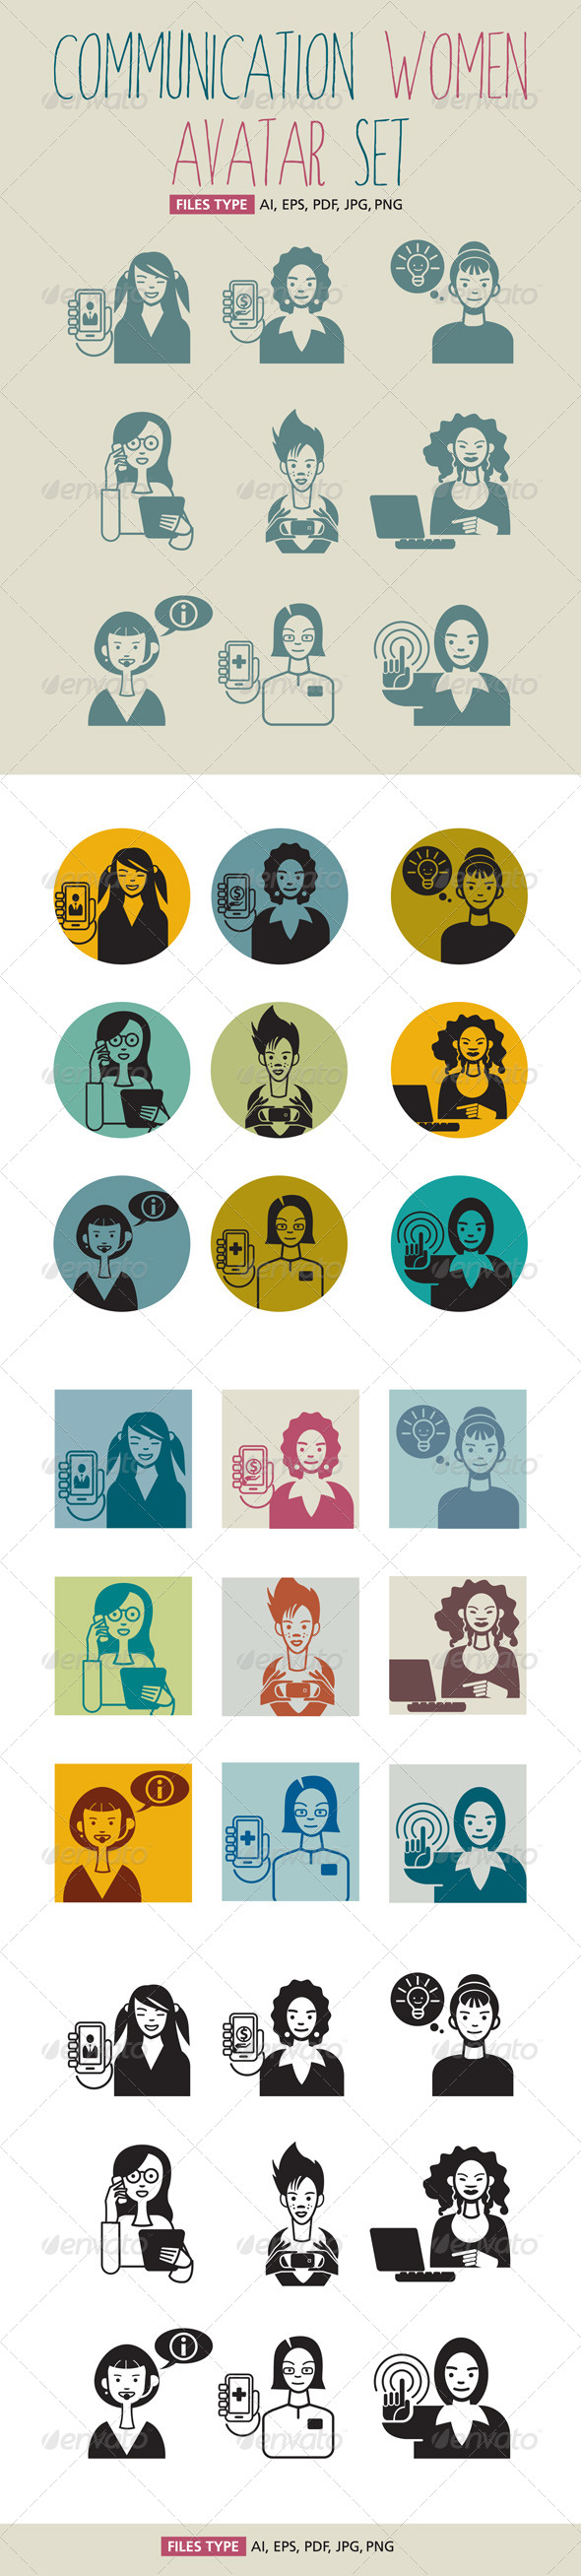 Communication Women Avatar Set